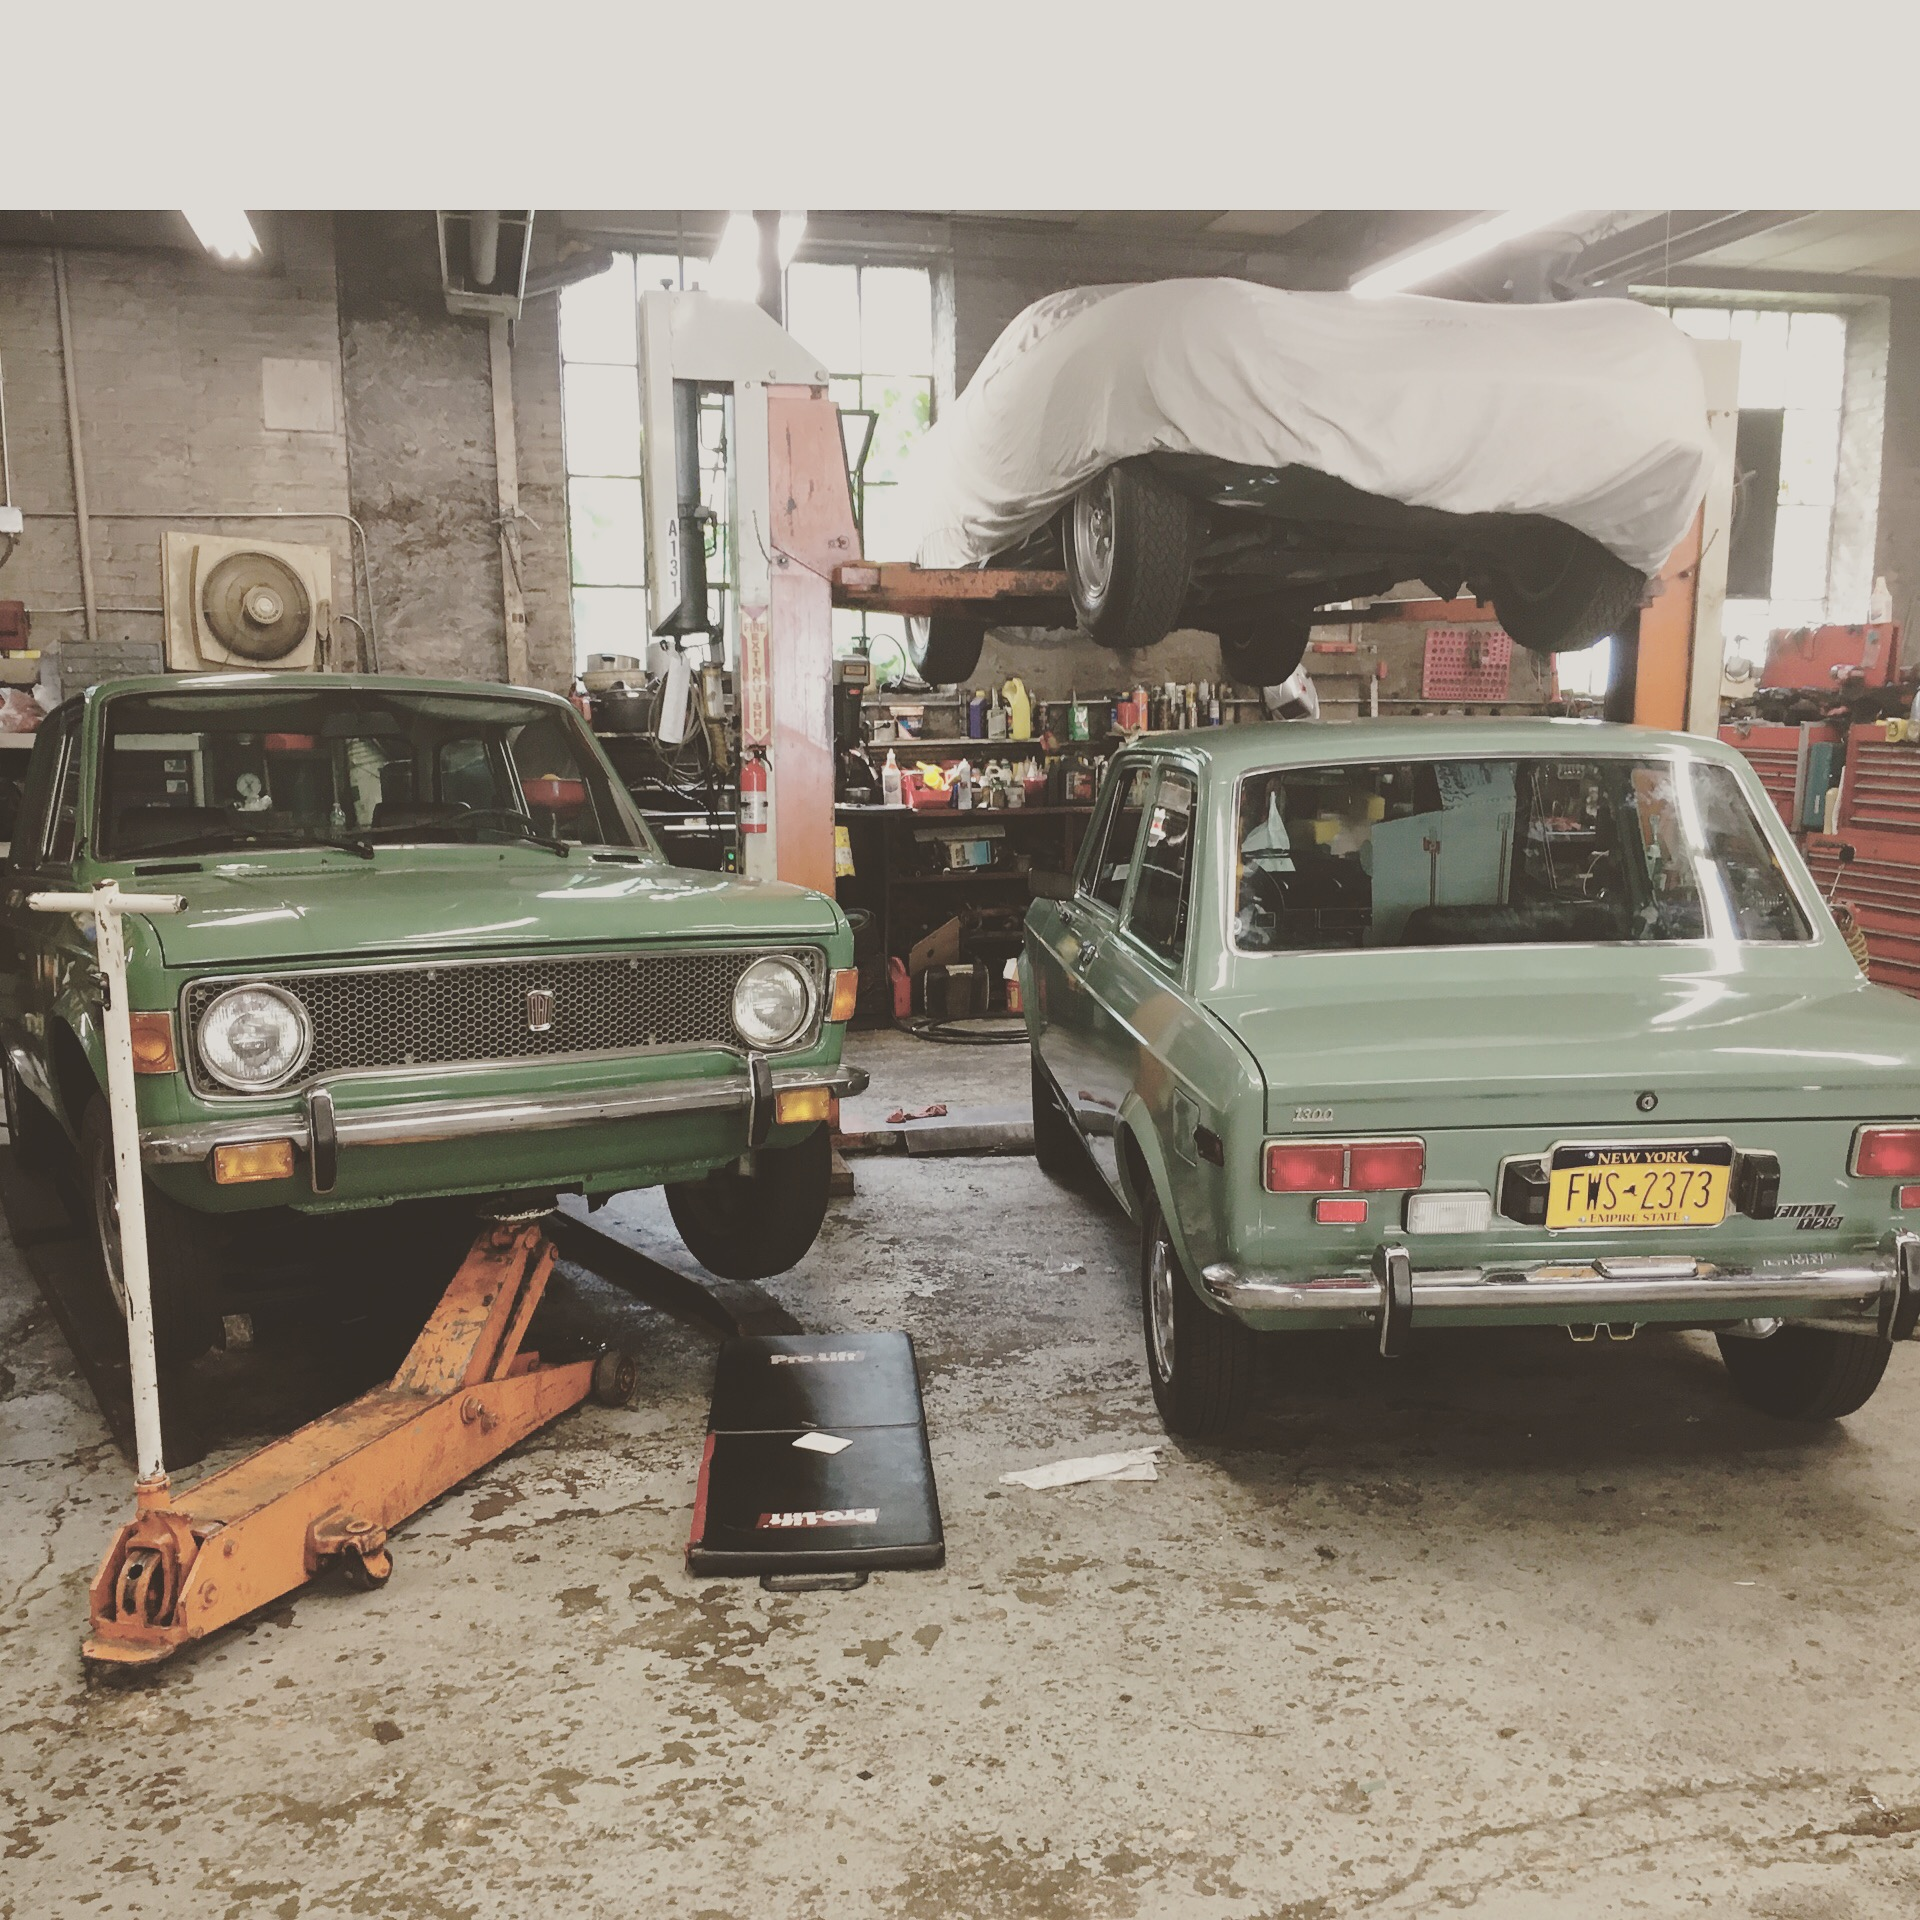 1975 and 1974 Fiat 128 hero cars, trying to look identical, while preparing for the Steven Spielberg movie The Post, Brooklyn, NY.